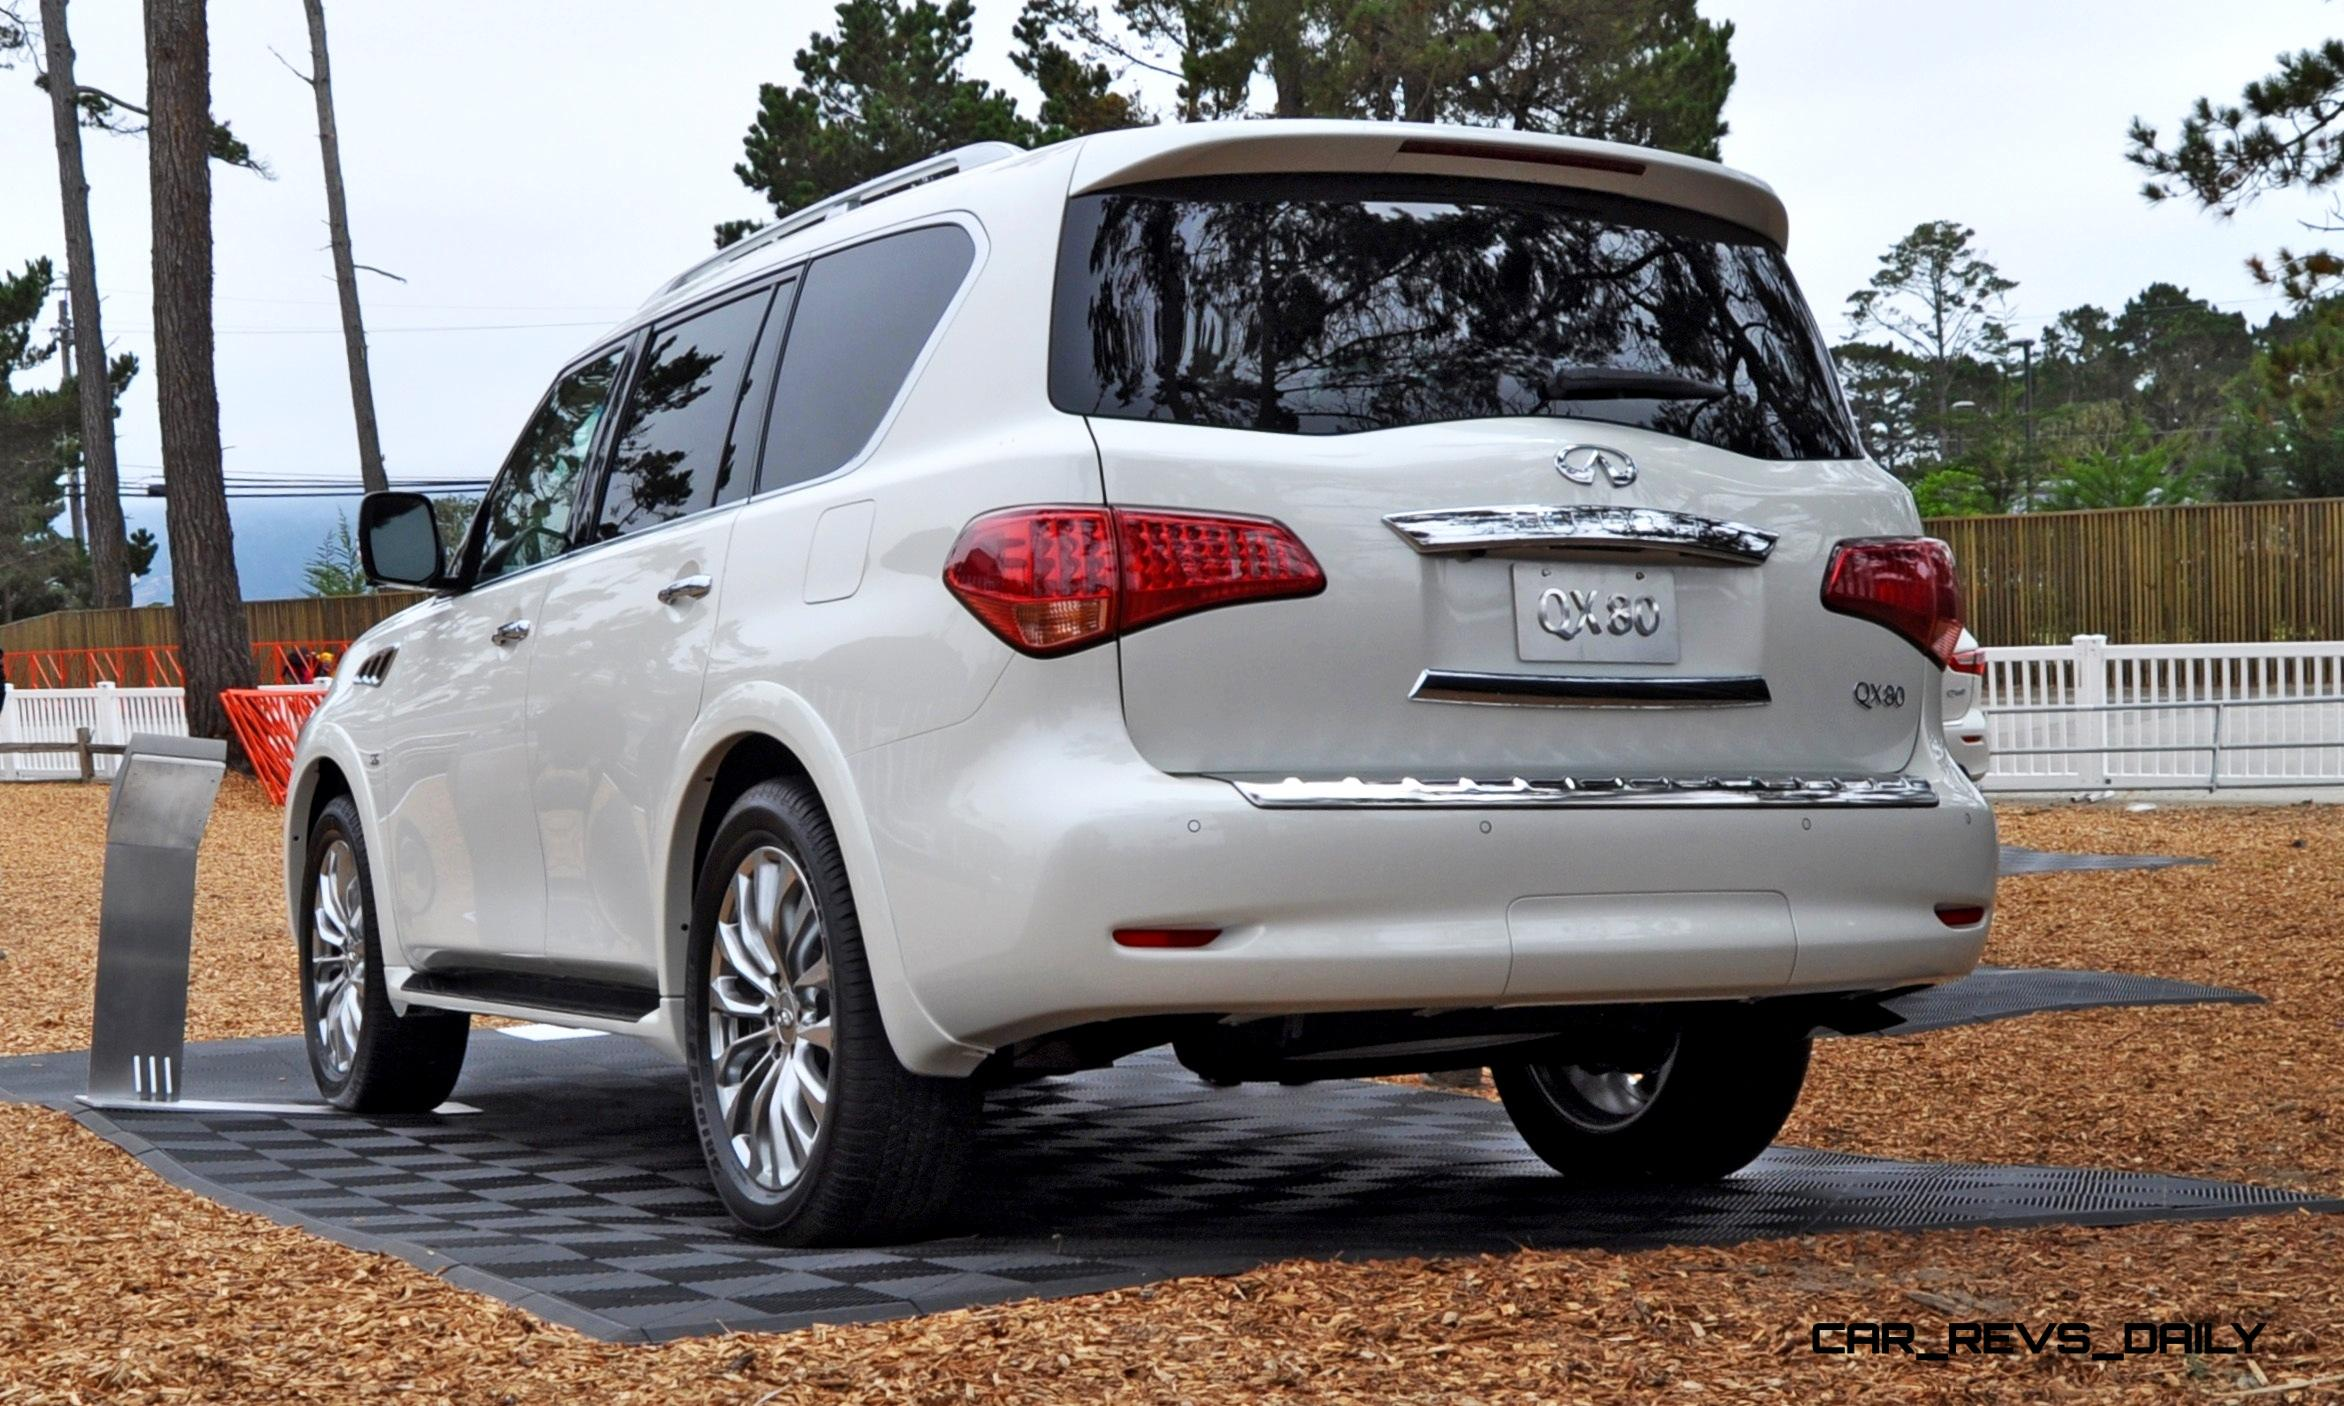 2015 infiniti qx80 pebble beach photos specs options pricing colors. Black Bedroom Furniture Sets. Home Design Ideas